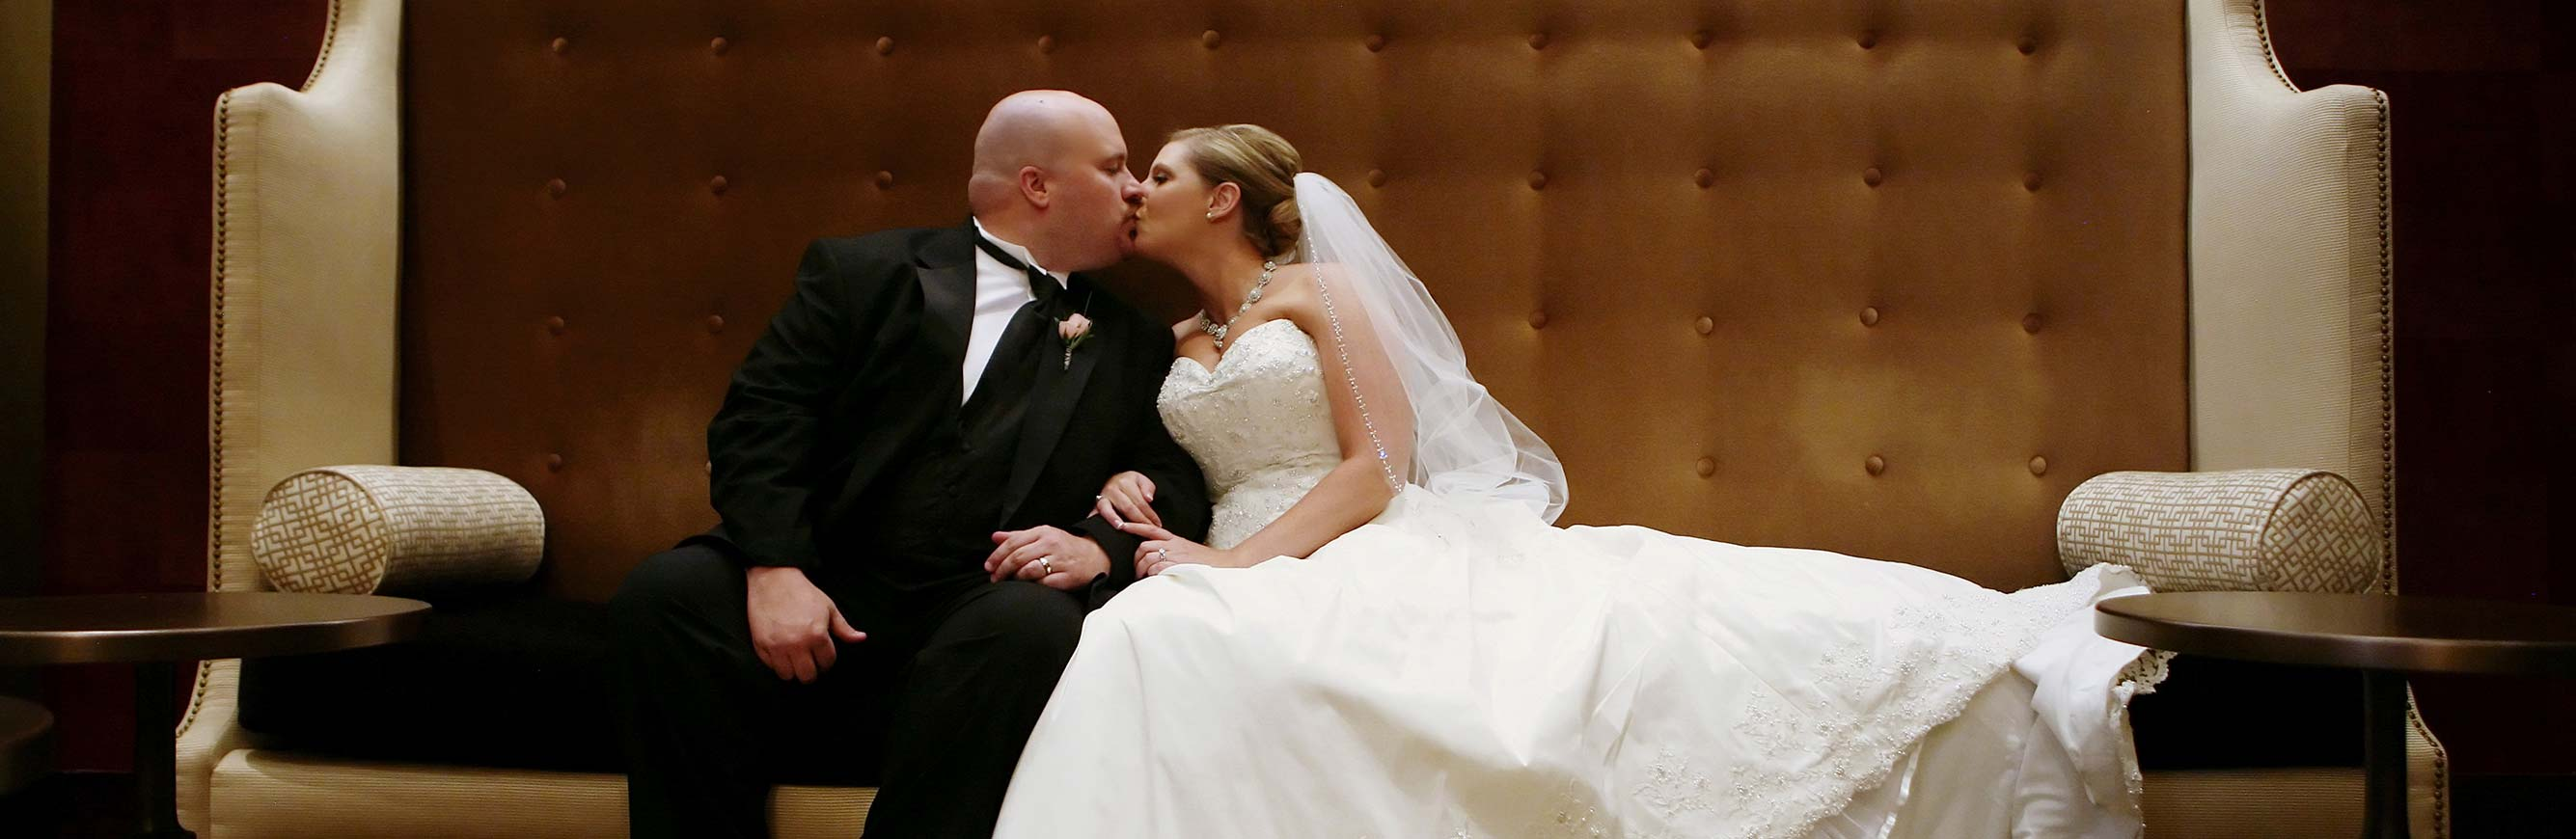 Hotel Phillips Wedding Packages